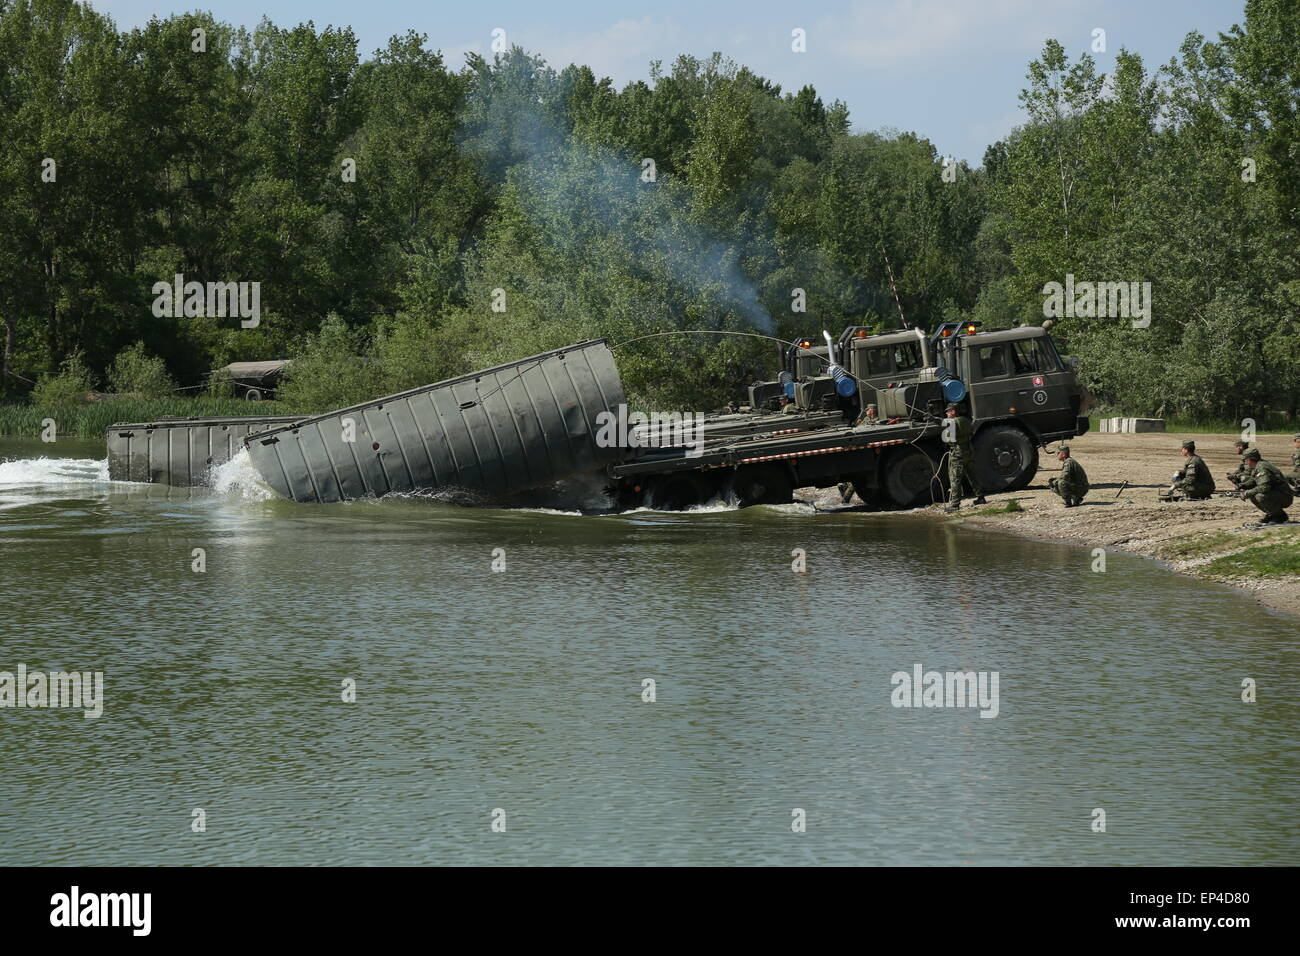 (150513) -- SERED, May 13, 2015 (Xinhua) -- Soldiers operate heavy machinery to unload a floating bridge during - Stock Image